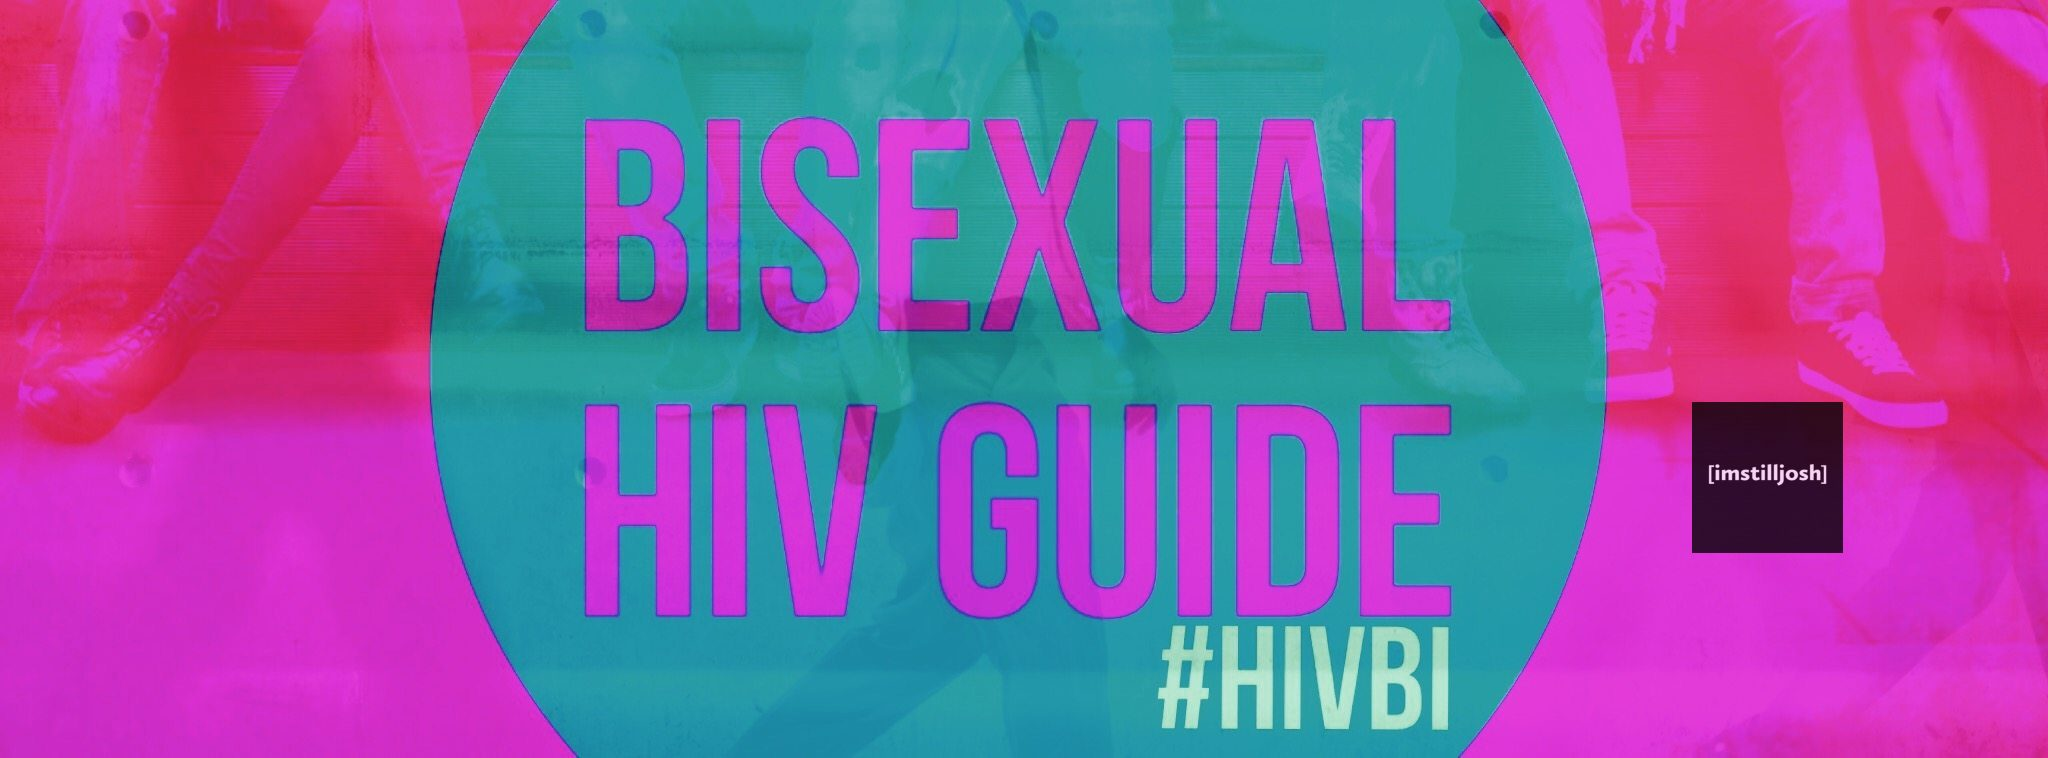 #HIVBI Bisexual HIV Guide